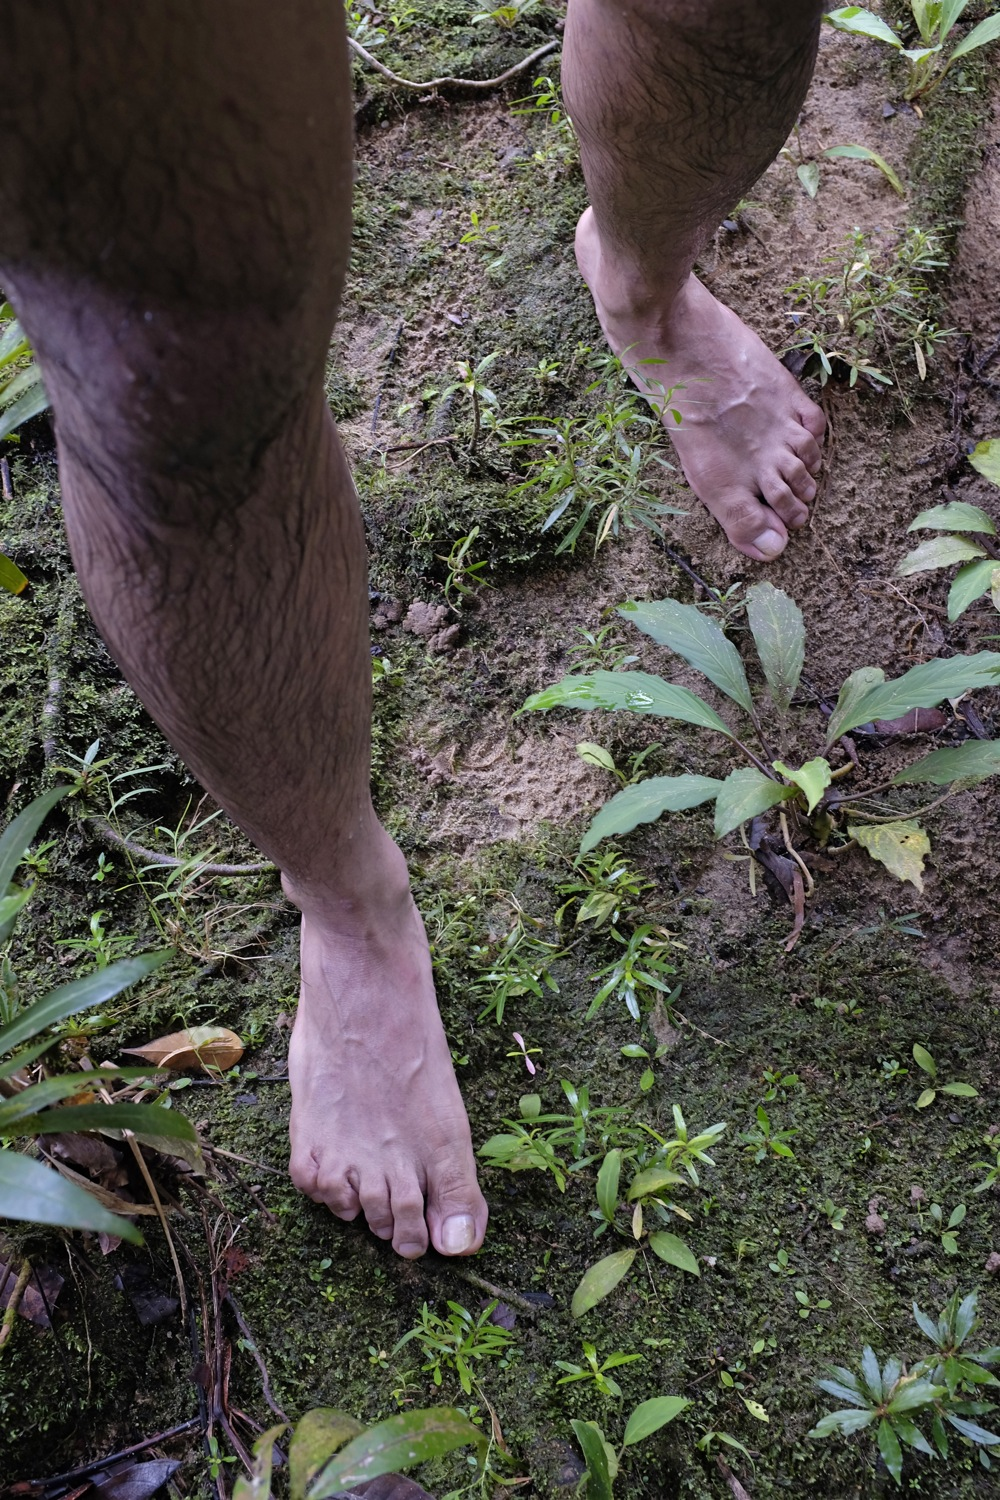 Bare feet on jungle floor